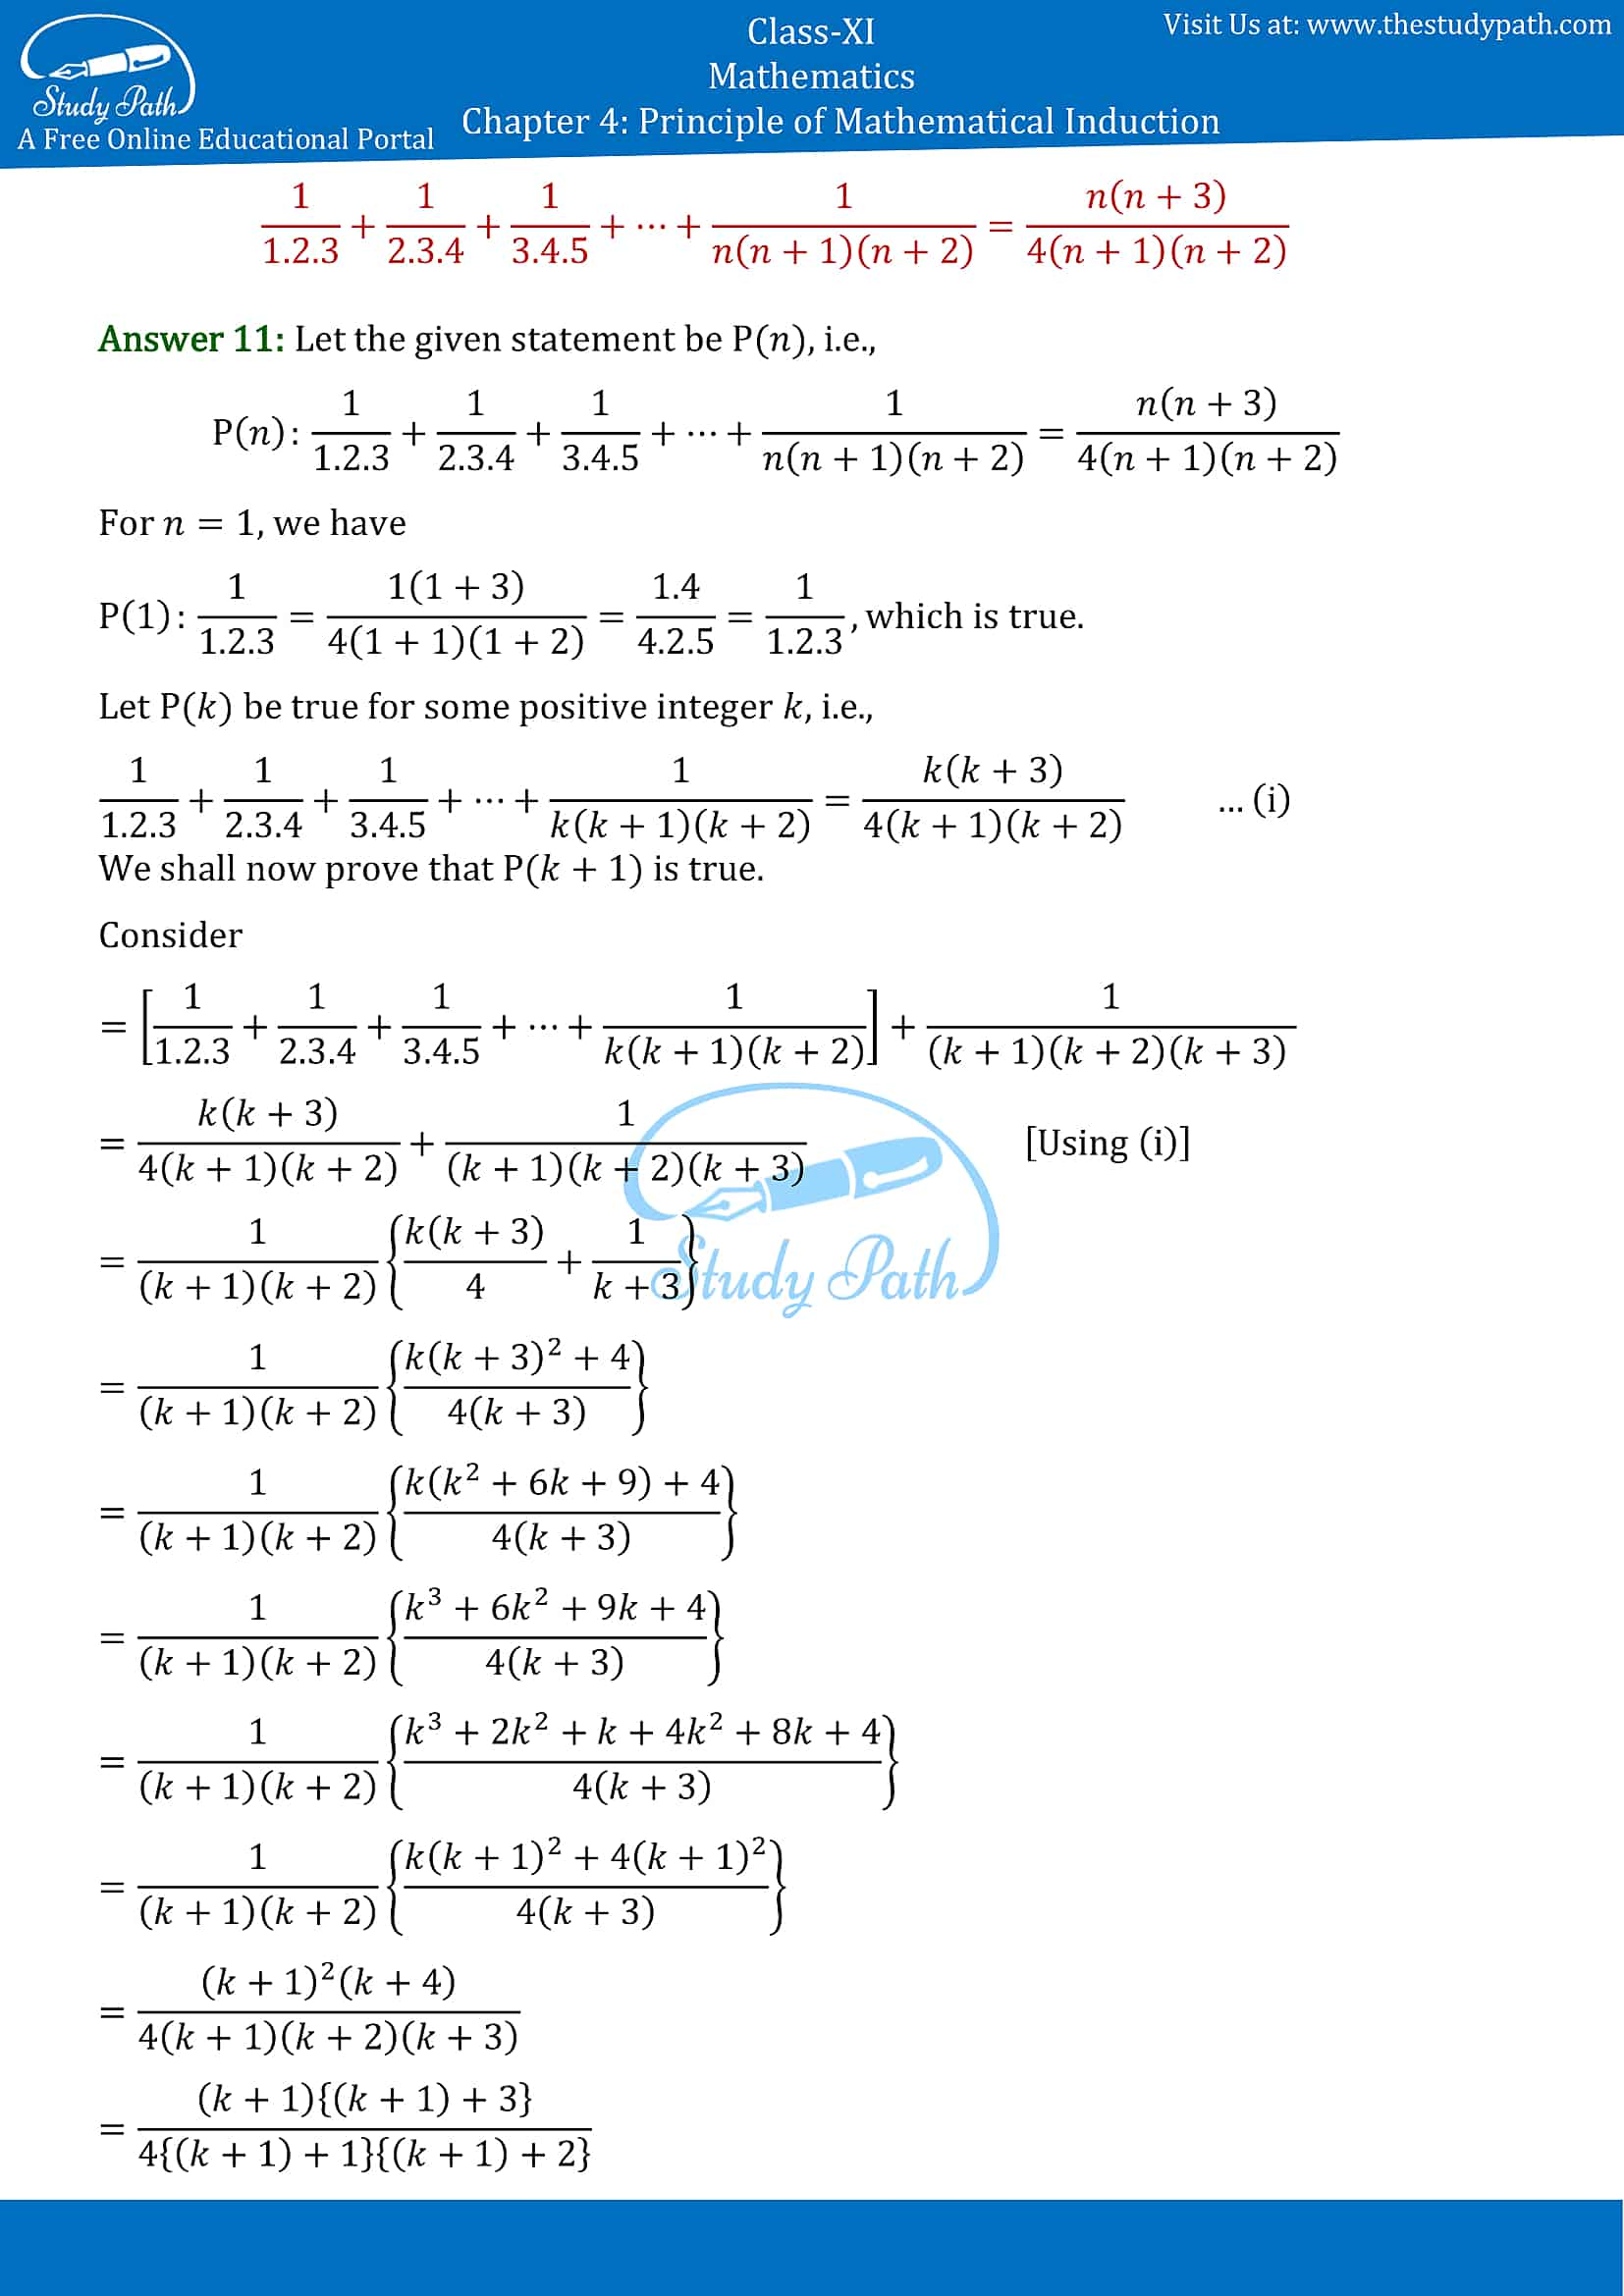 NCERT Solutions for Class 11 Maths chapter 4 Principle of Mathematical Induction